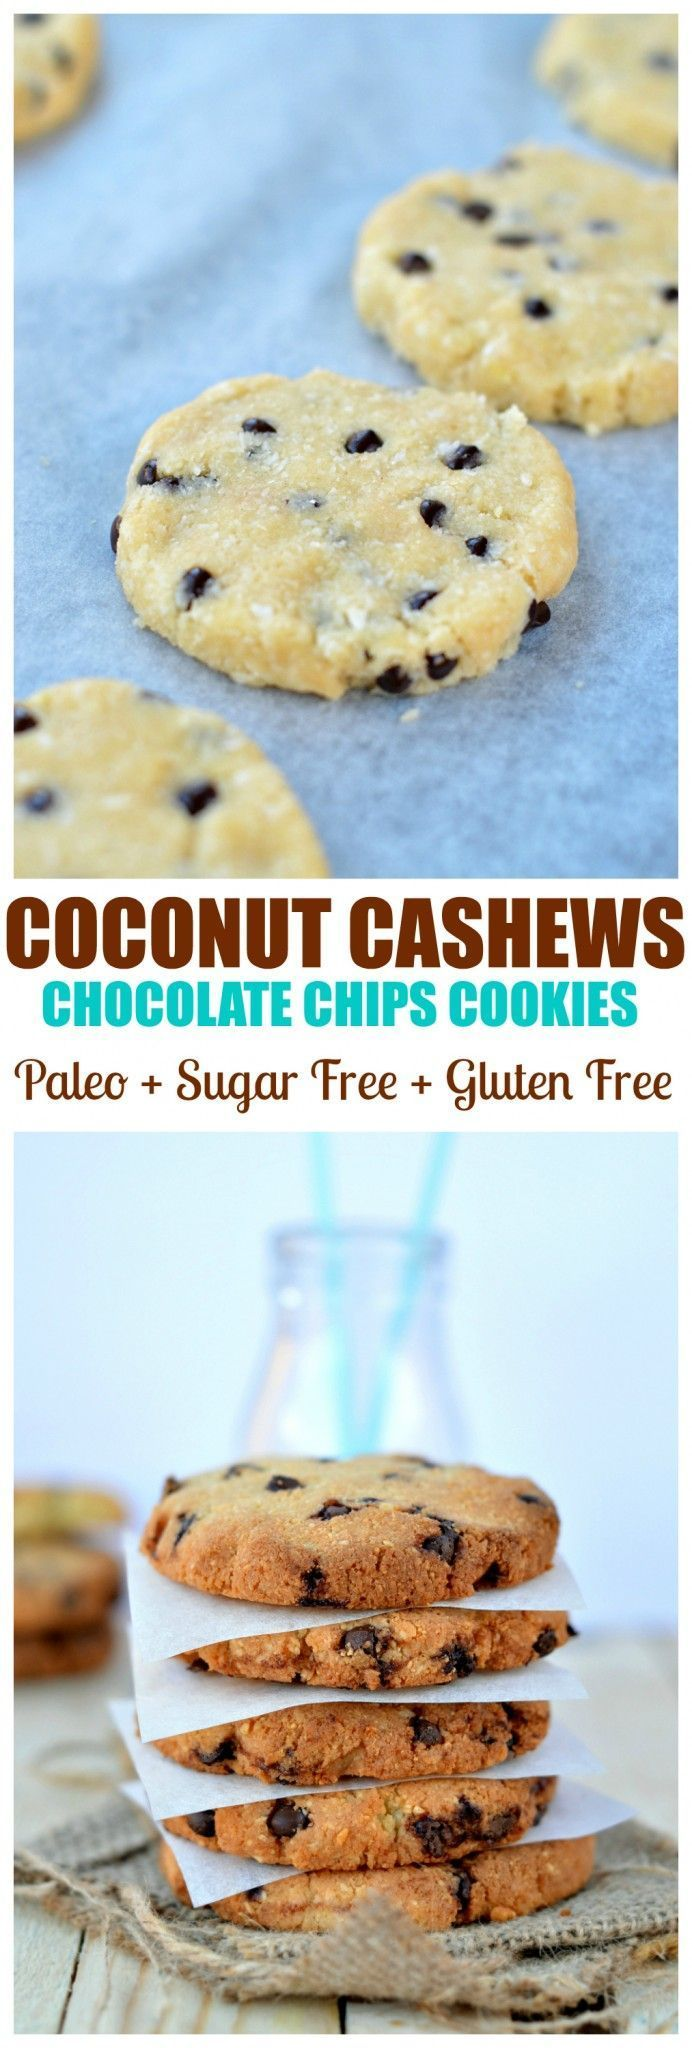 Coconut and cashew grain-free chocolate chip cookies